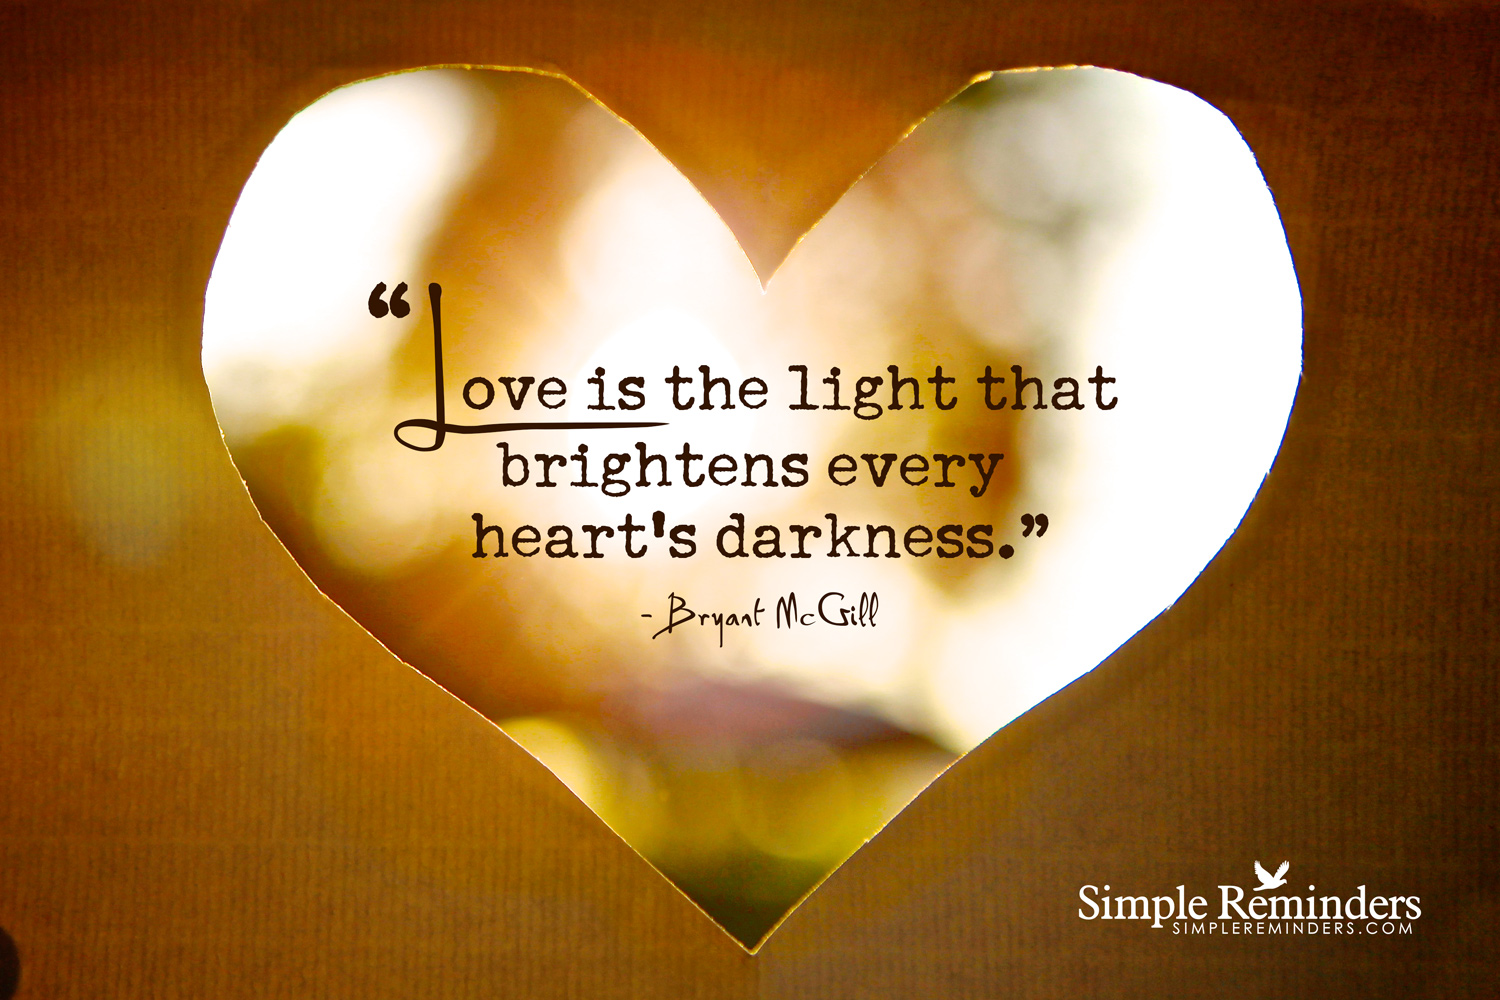 simplereminders-com-love-heart-light-mcgill-withtext-displayres.jpg